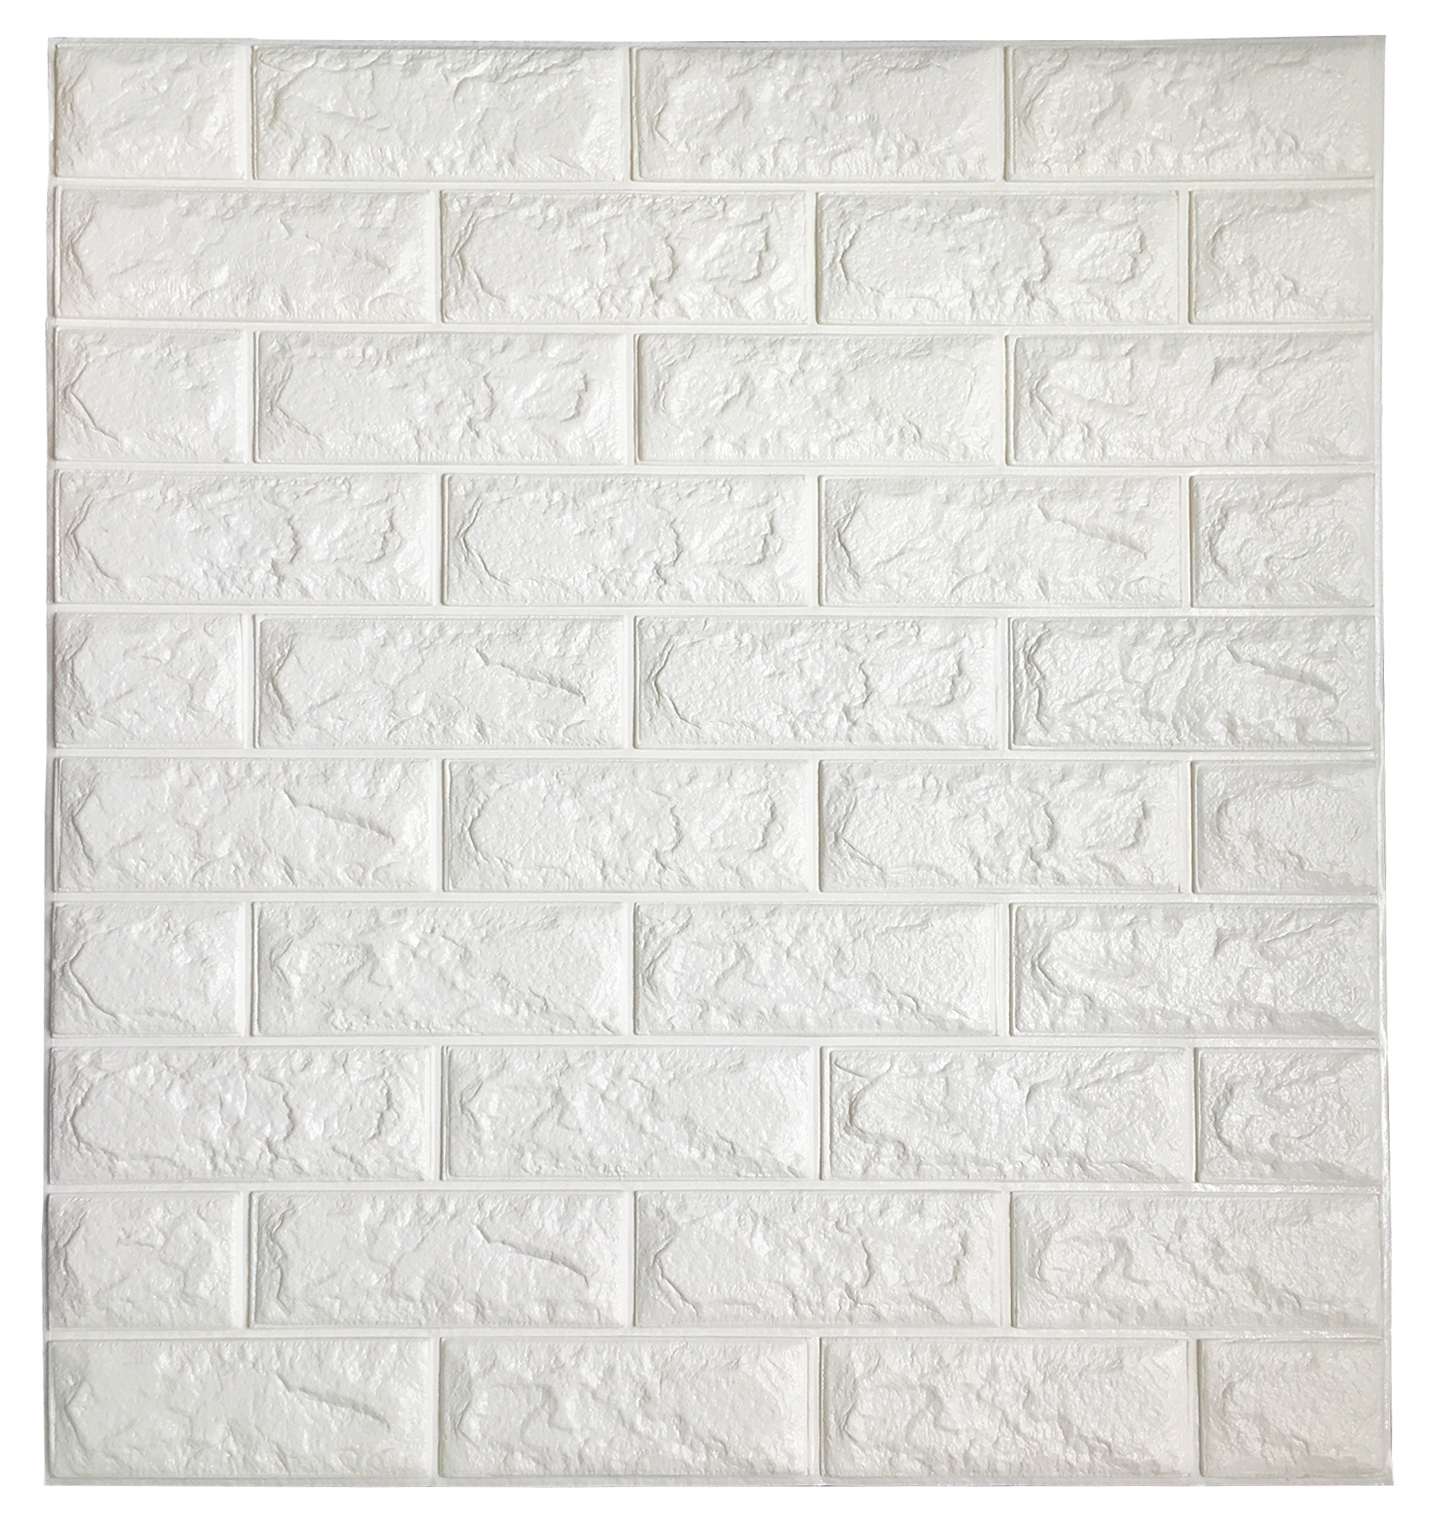 3D Brick Wall Art Pertaining To Popular Peel & Stick 3D Wall Panels White 3D Brick Wallpaper, 2.6' X  (View 5 of 15)